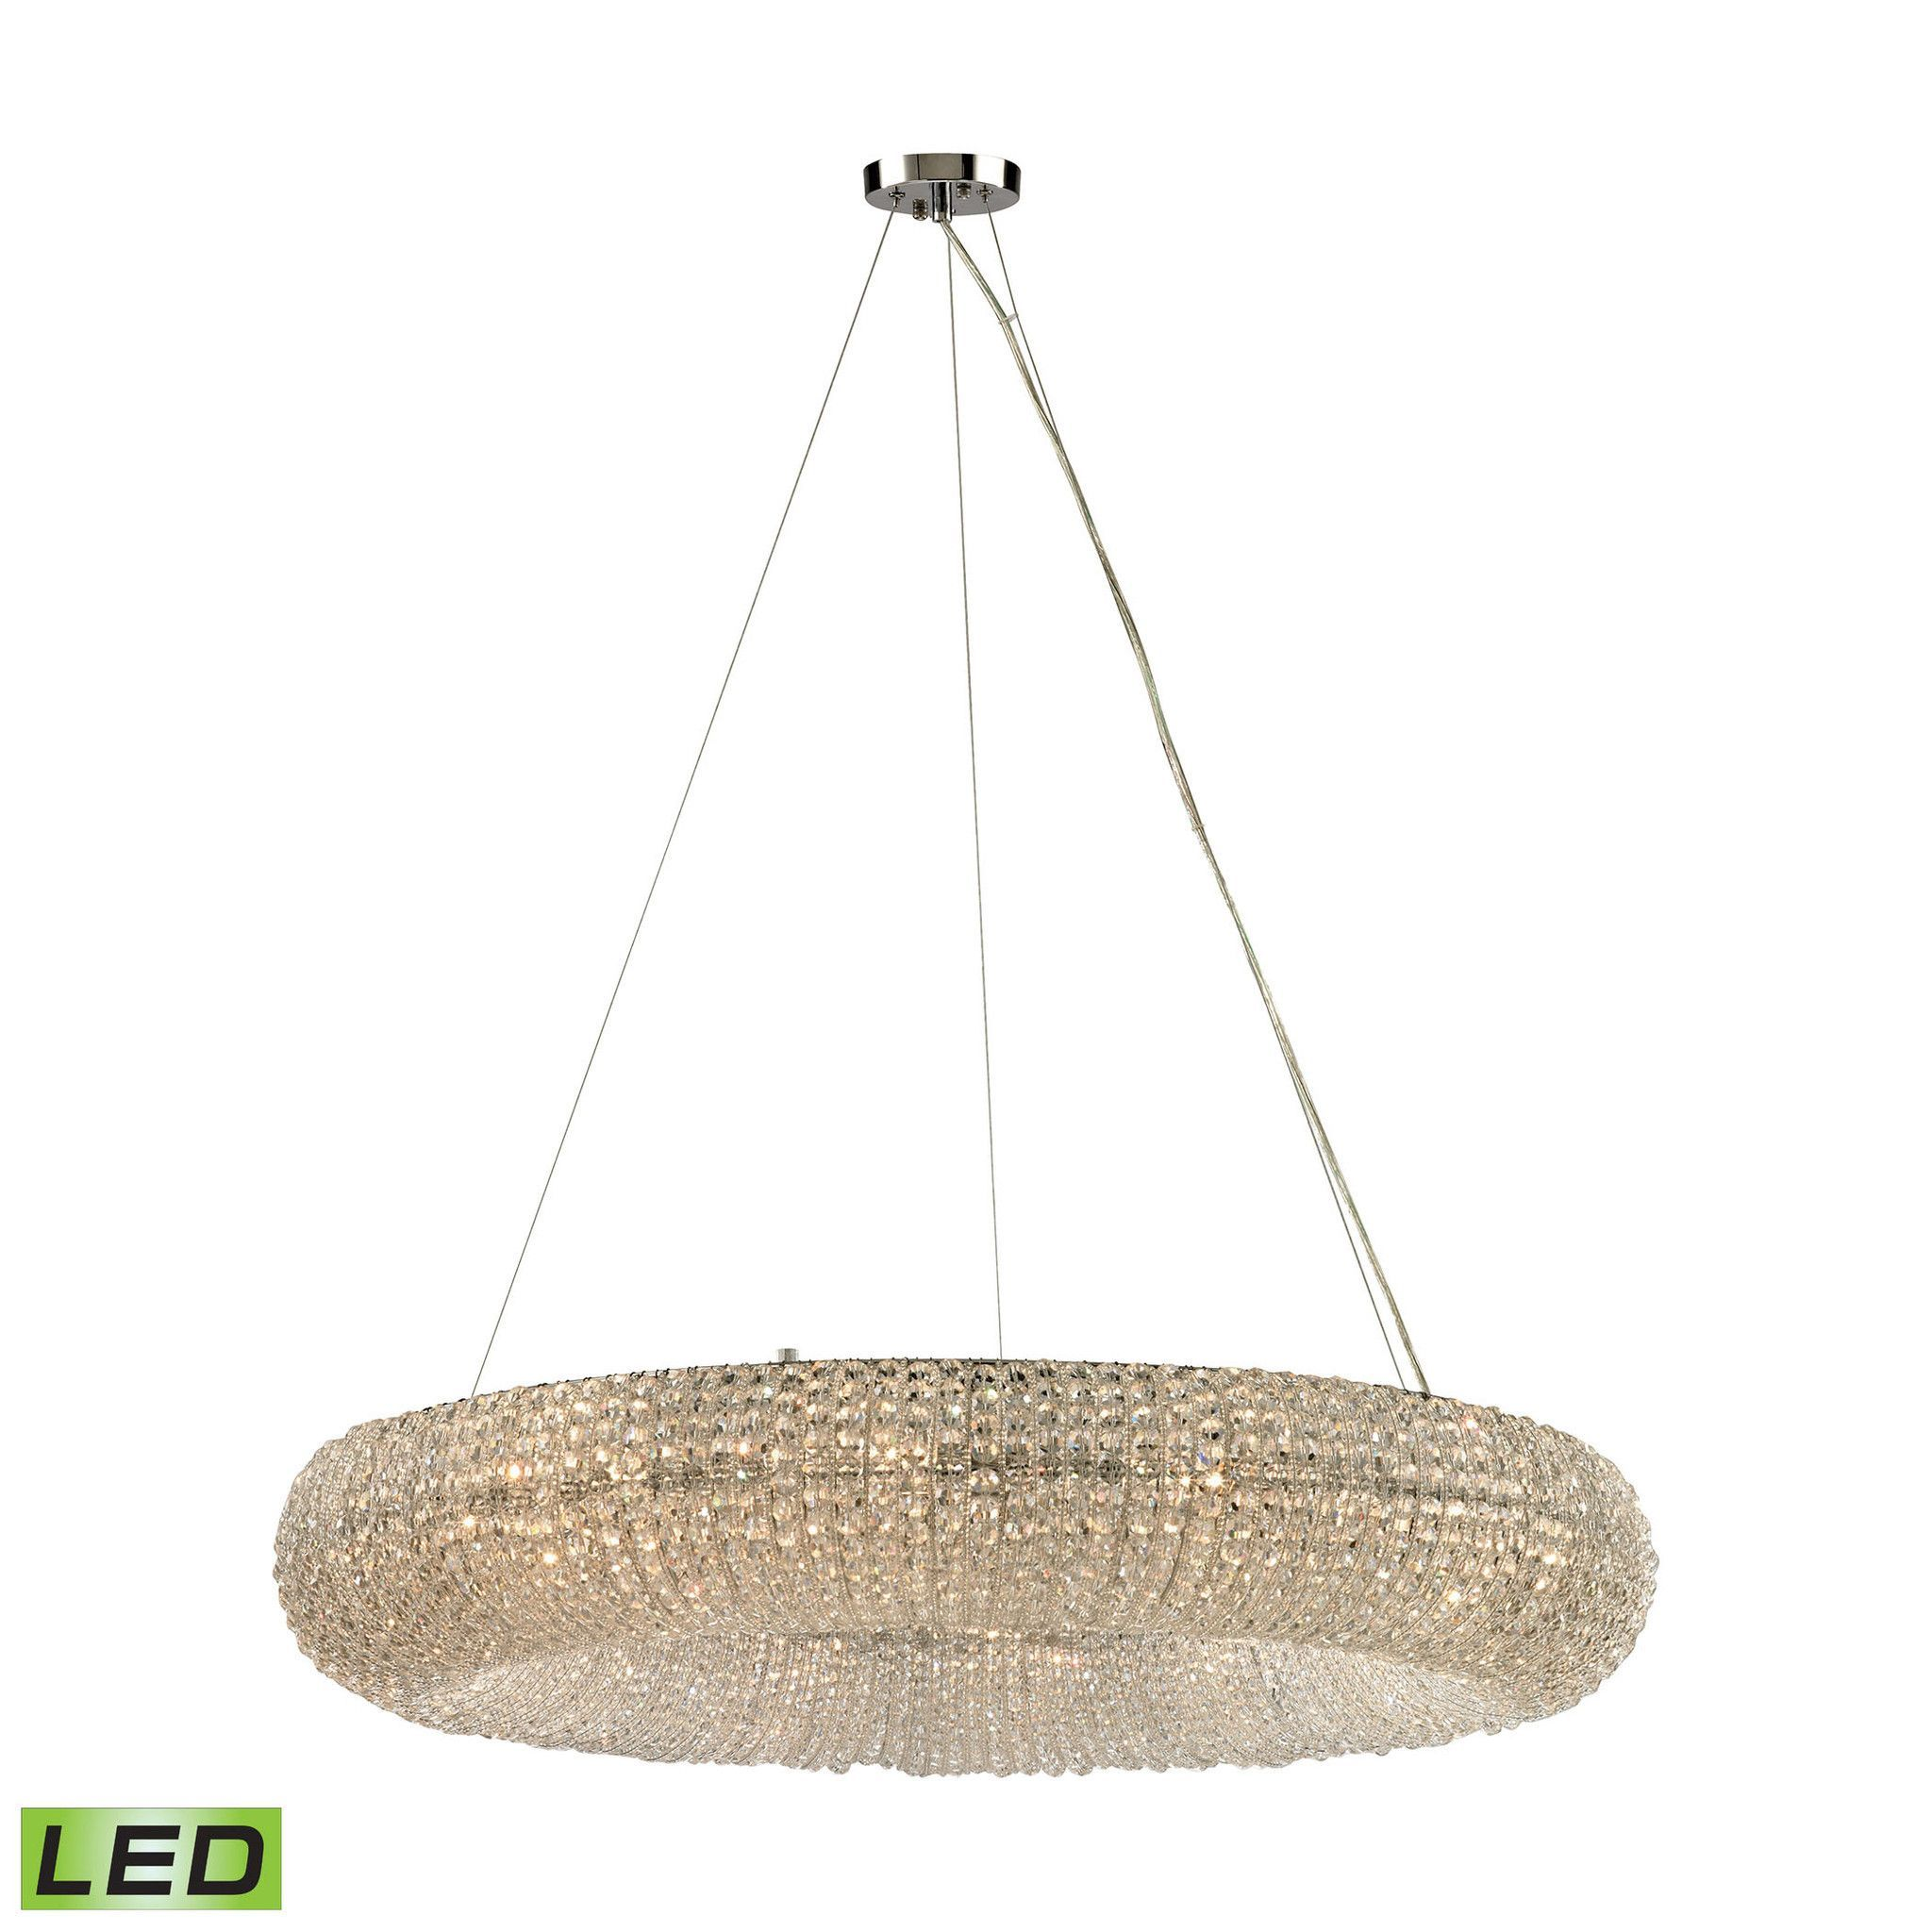 bronze ocular railroad lbfslsh chandelier lighting light six oil standard satin with products glass rubbed accents x clear tall elk searchlighting base wide brass